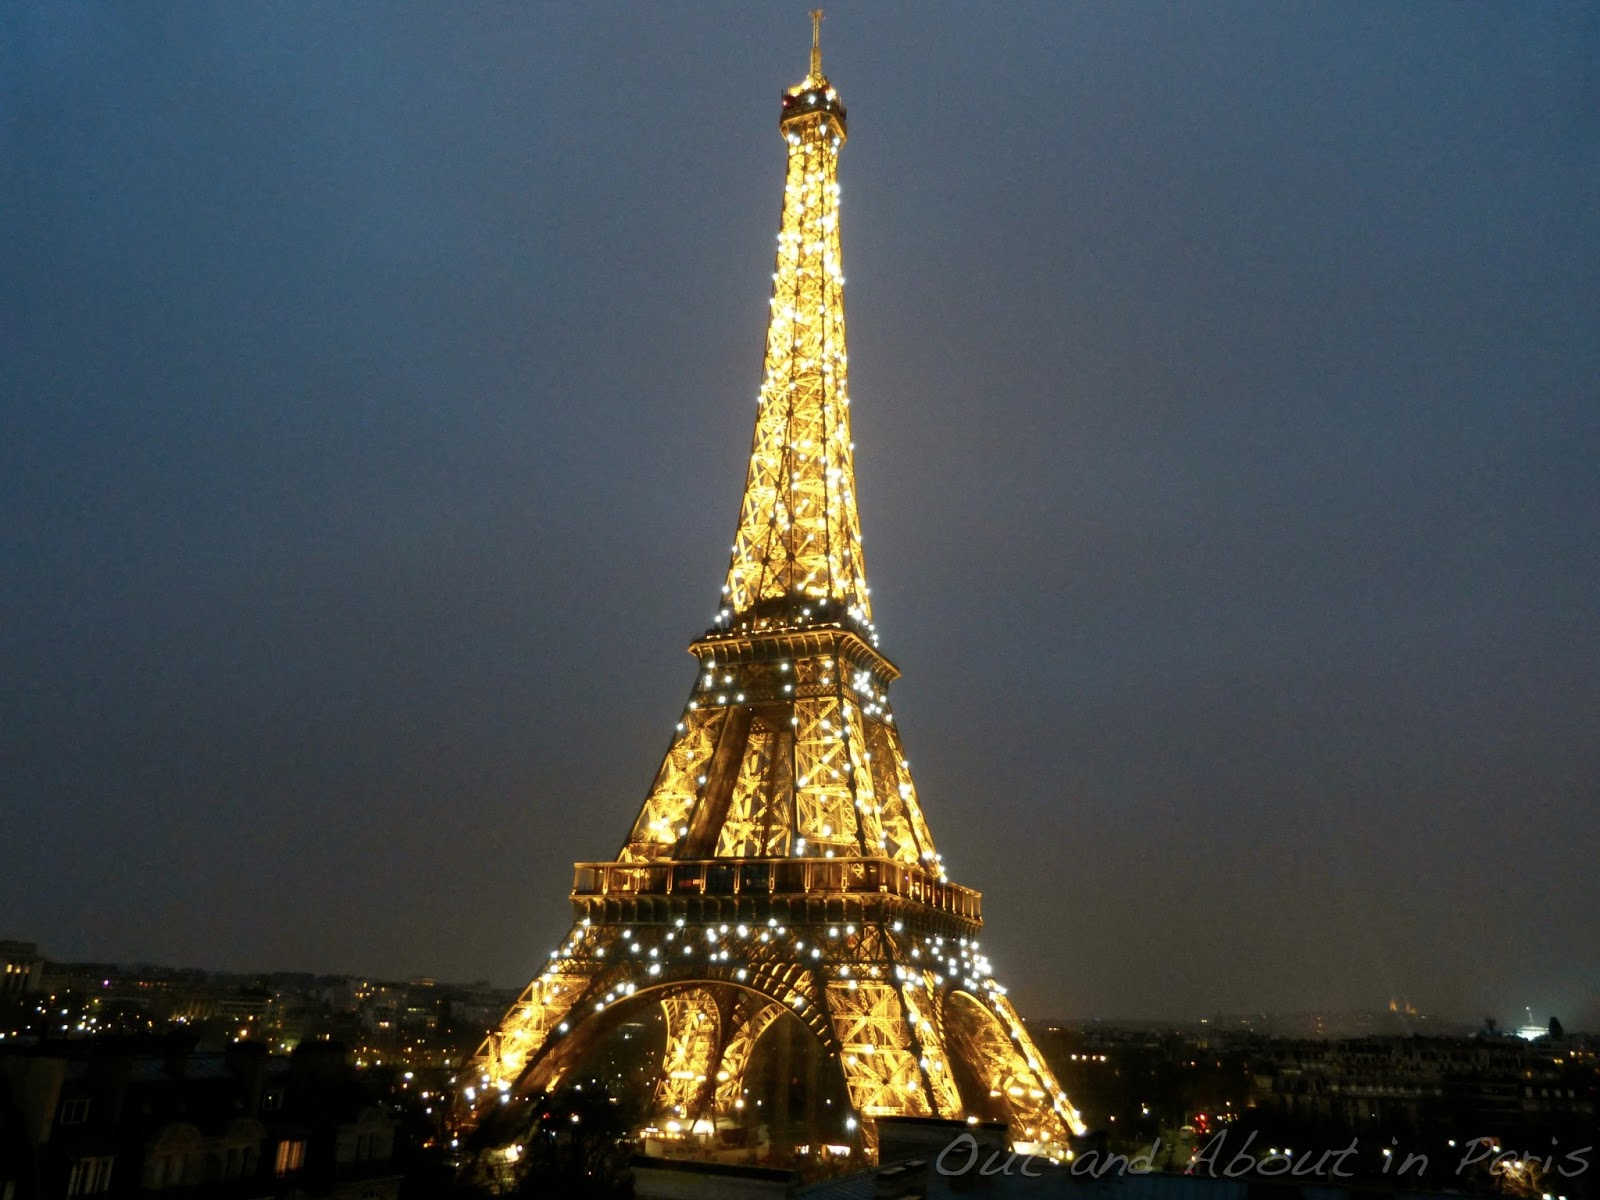 dinner at the eiffel tower